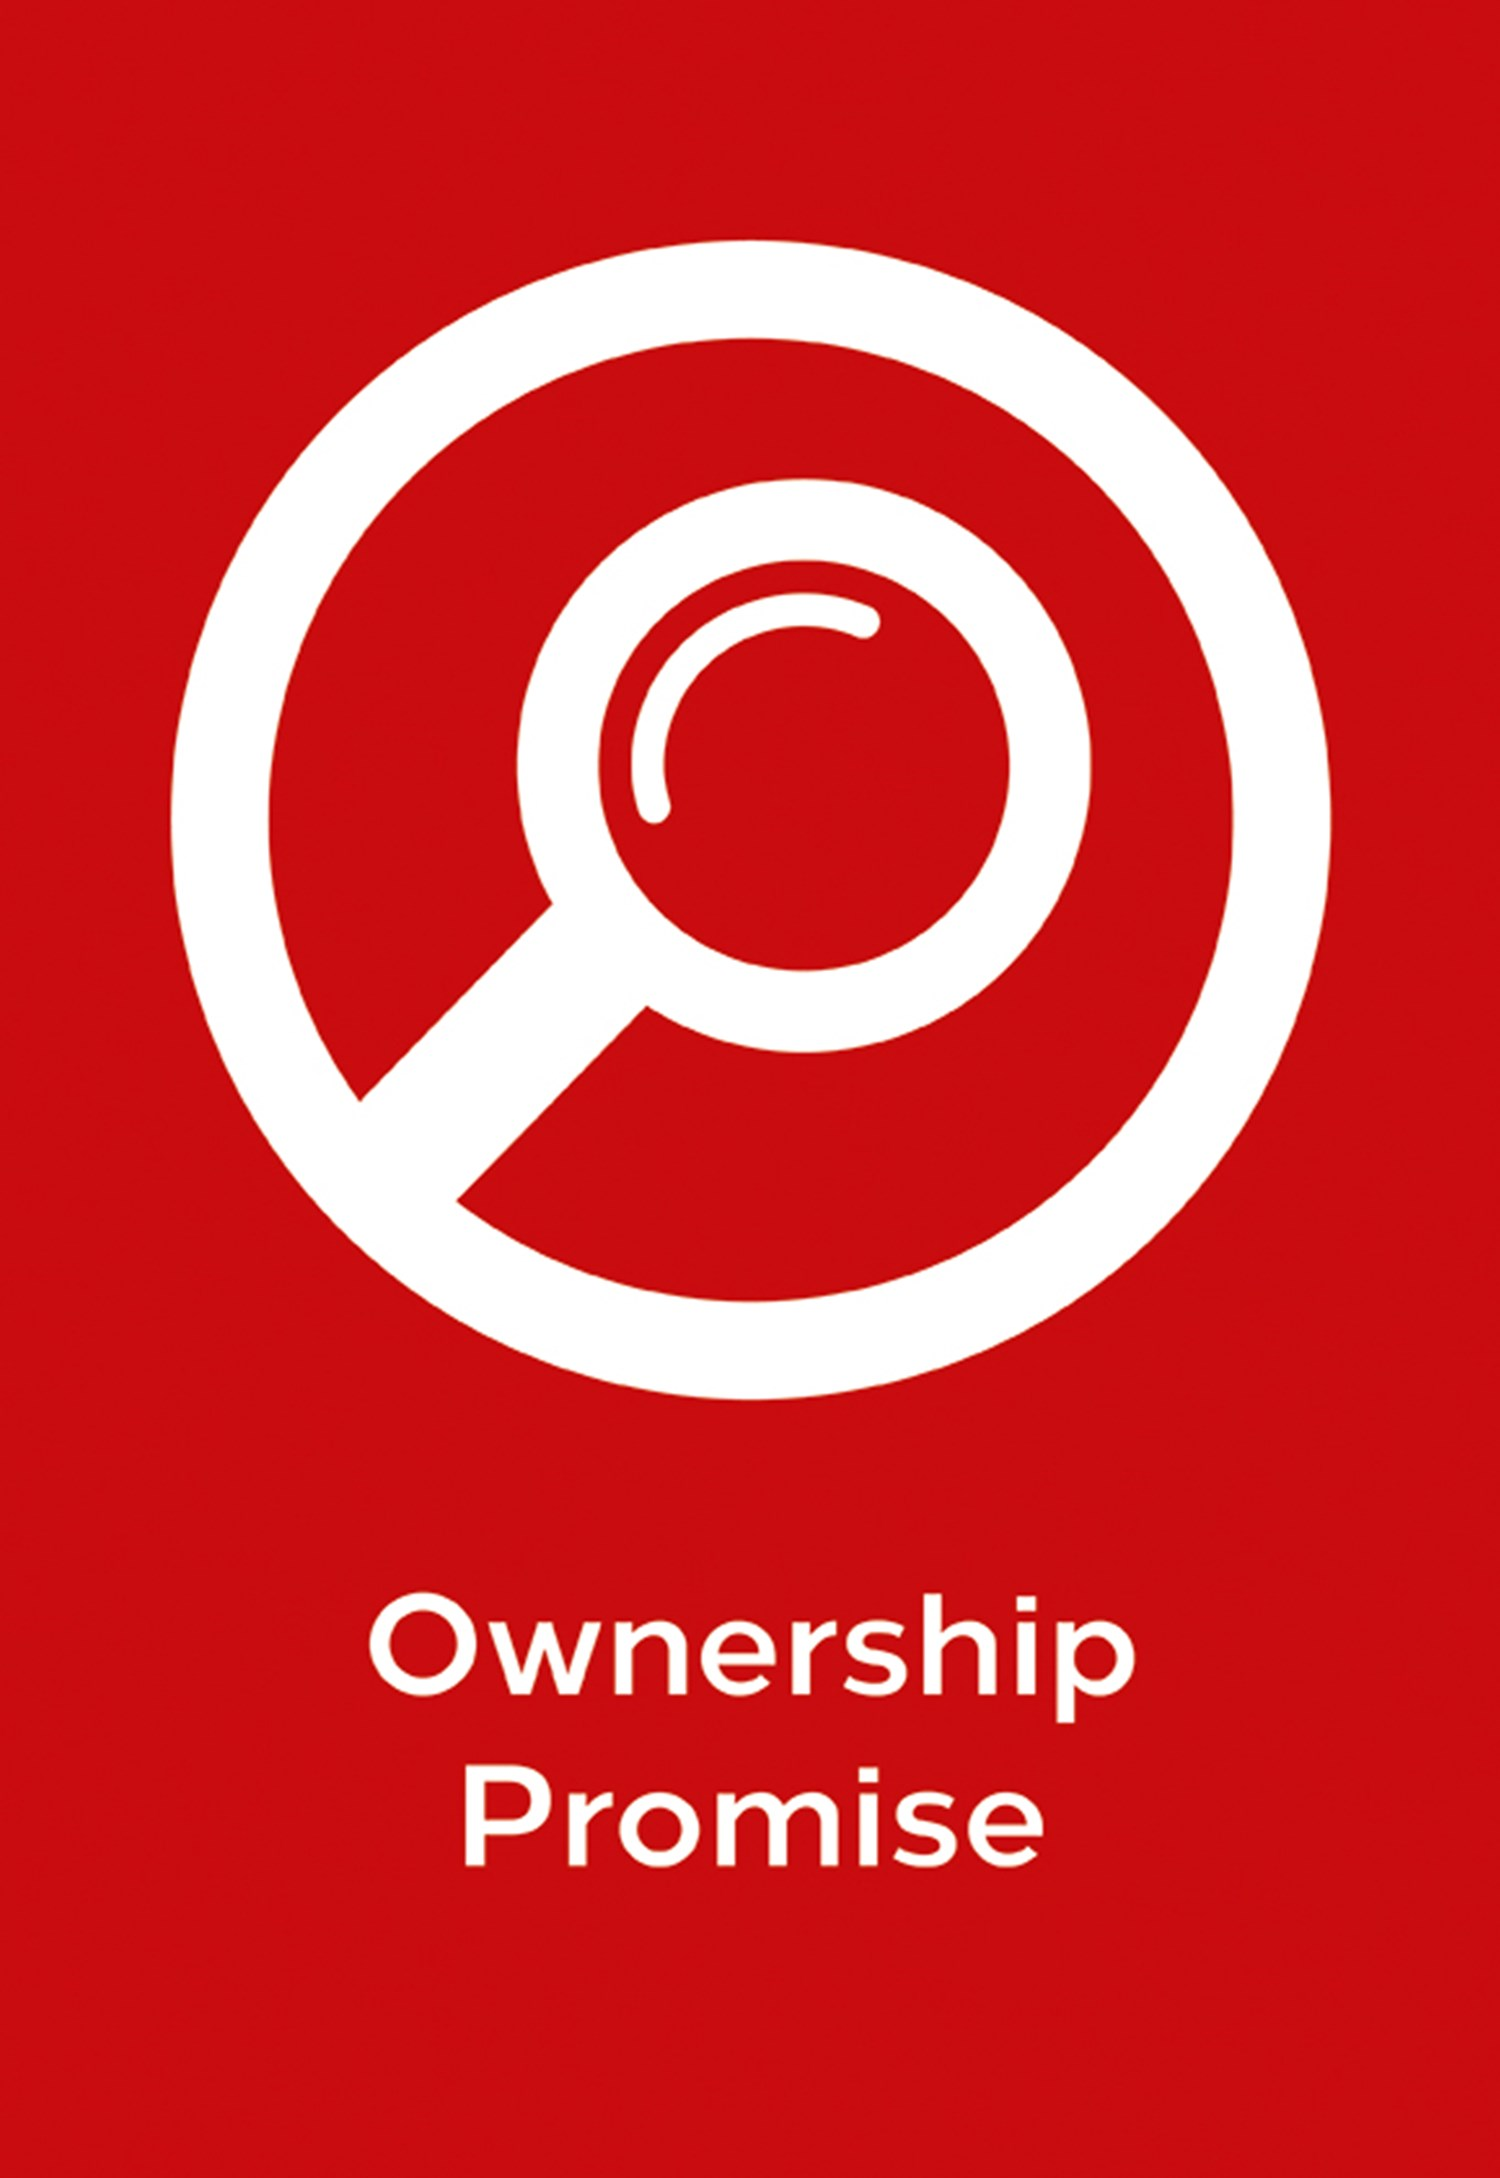 Ownership Promise  The great thing about buying a used car with Network Q is that you know exactly what you're getting. No hidden past, no hidden surprises, just complete peace of mind.